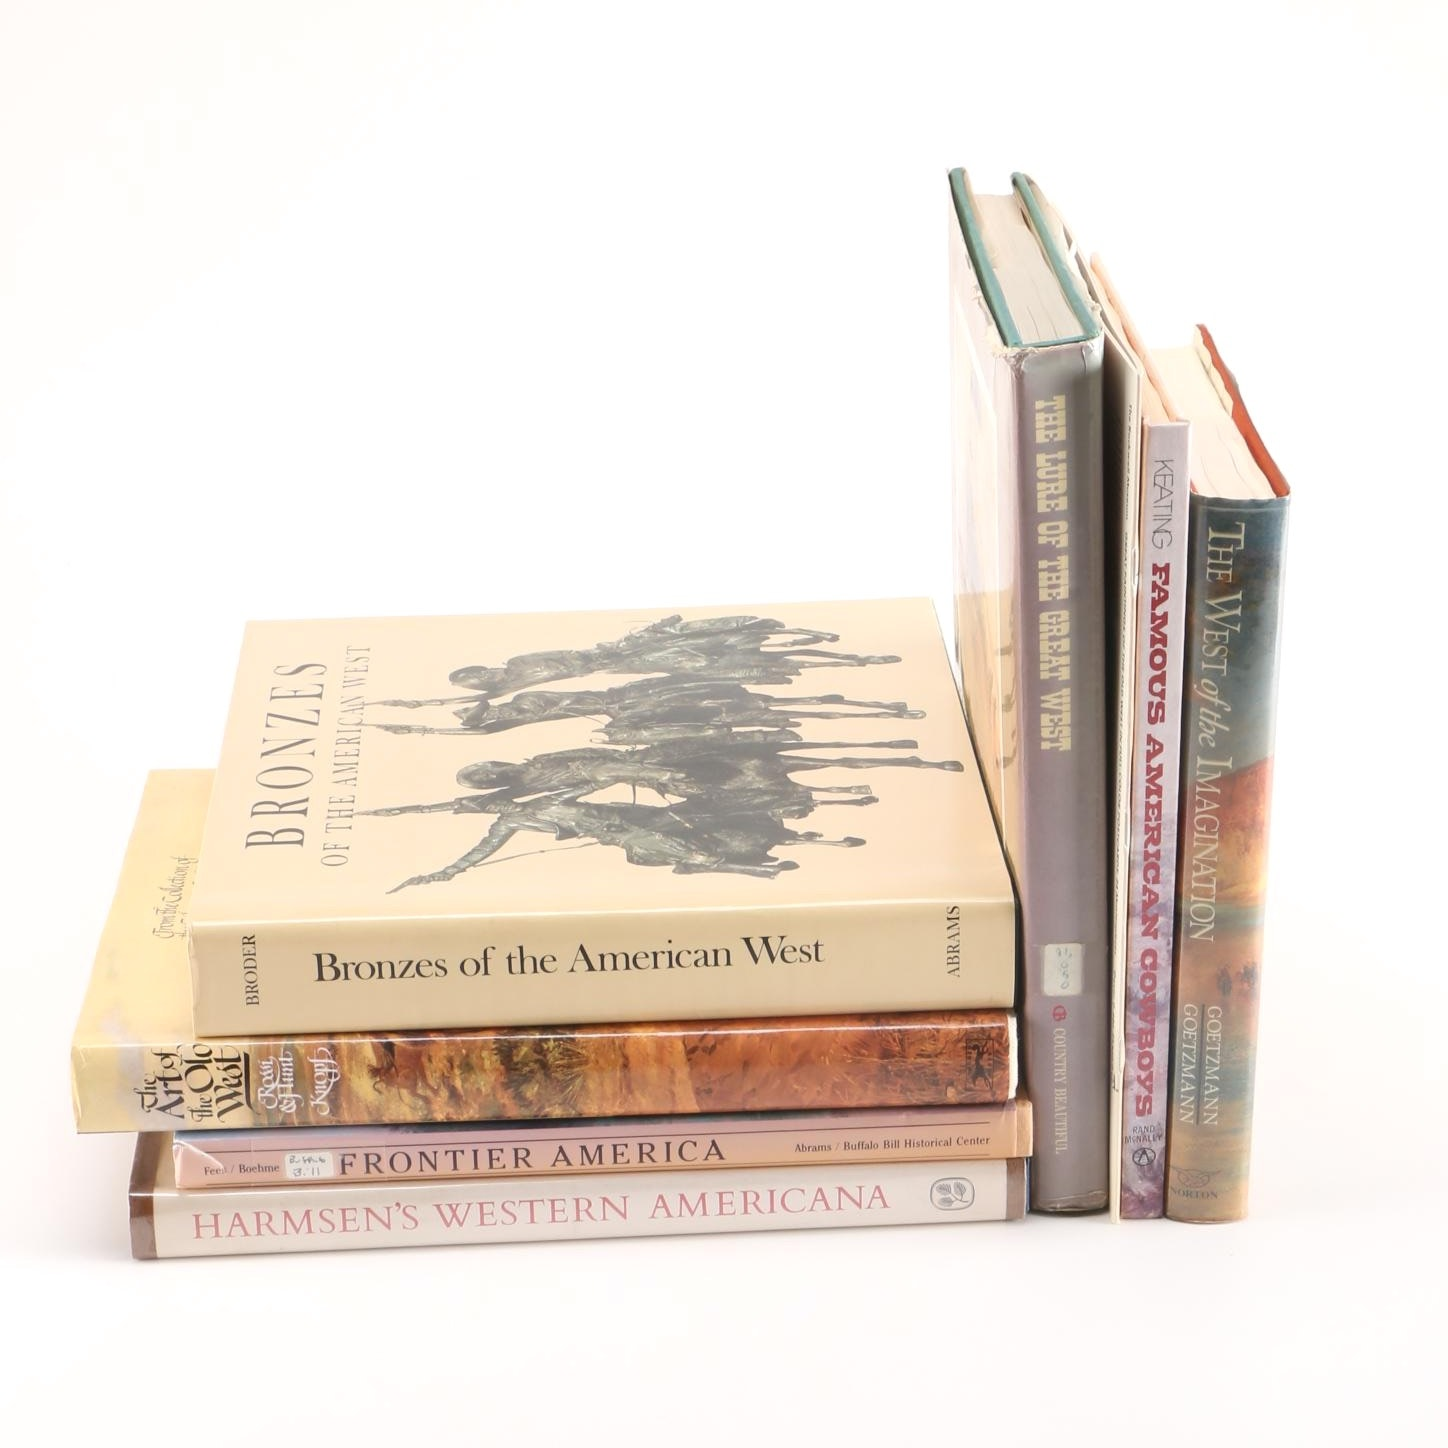 Books on the American West